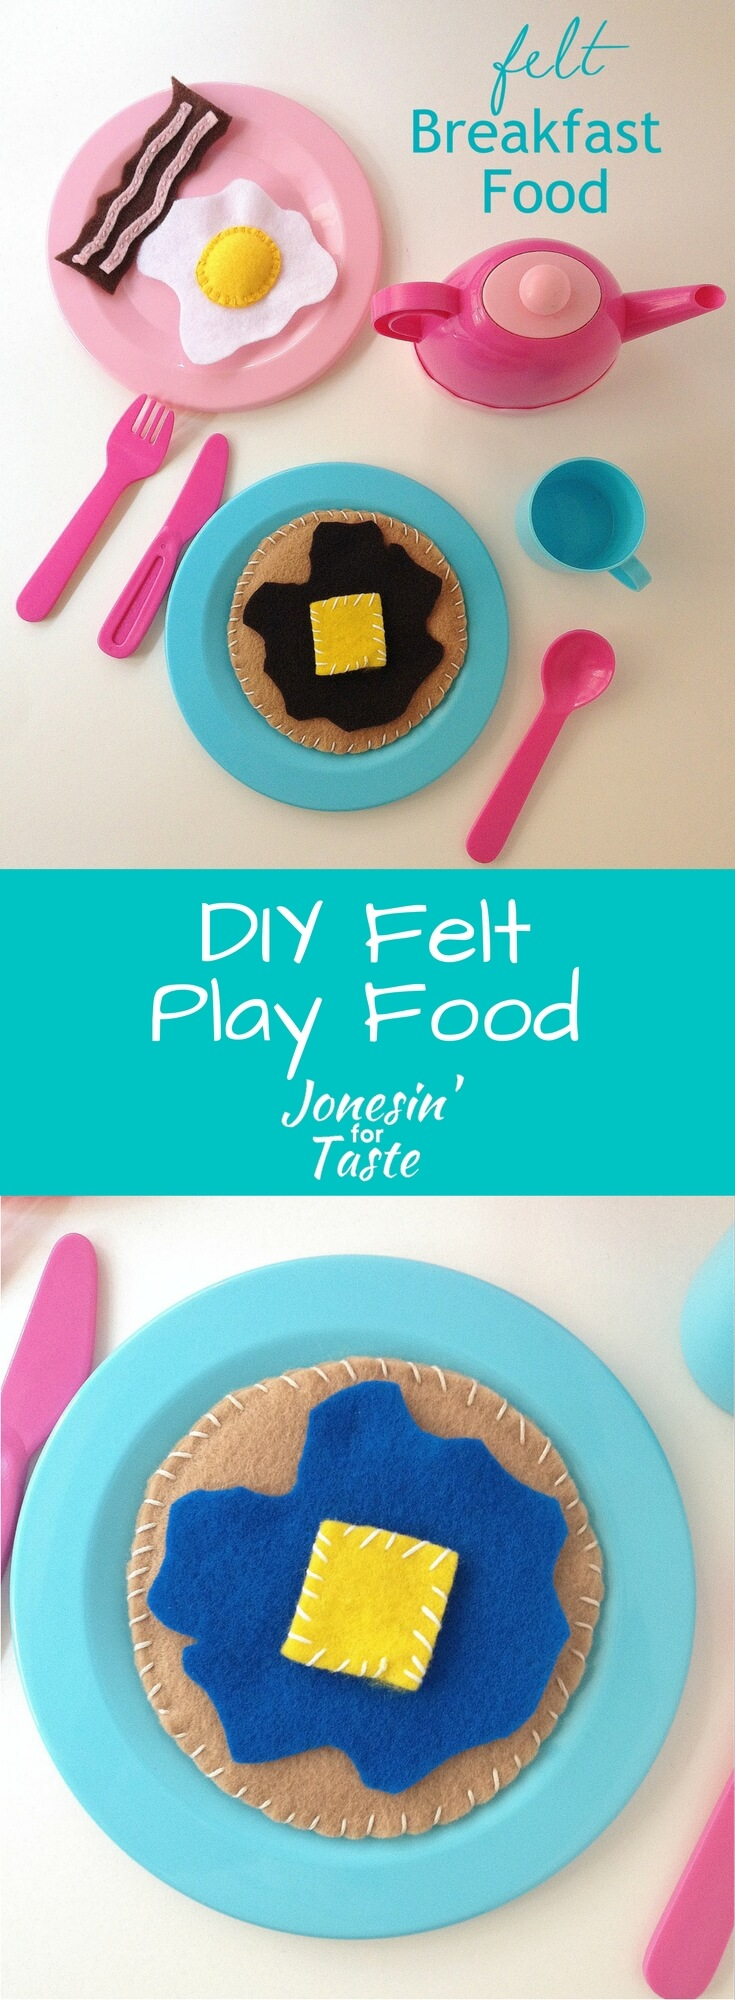 Simple DIY felt breakfast food made from inexpensive felt to inspire your budding chef's imagination. Free patterns included!